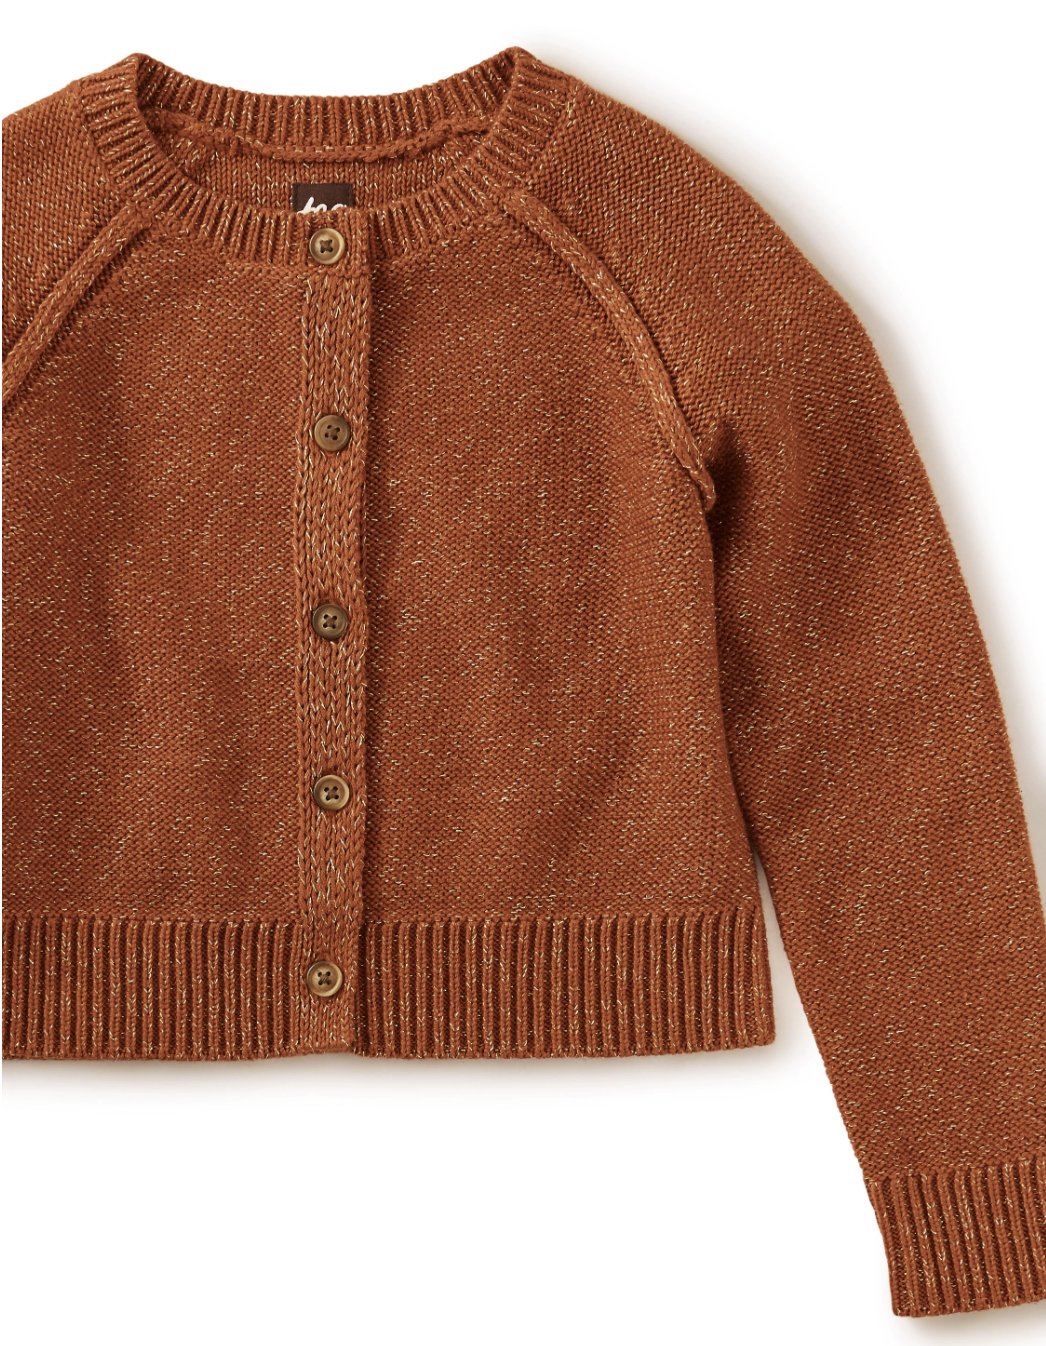 Tea Collection Sparkle Cardigan - Ginger Bread